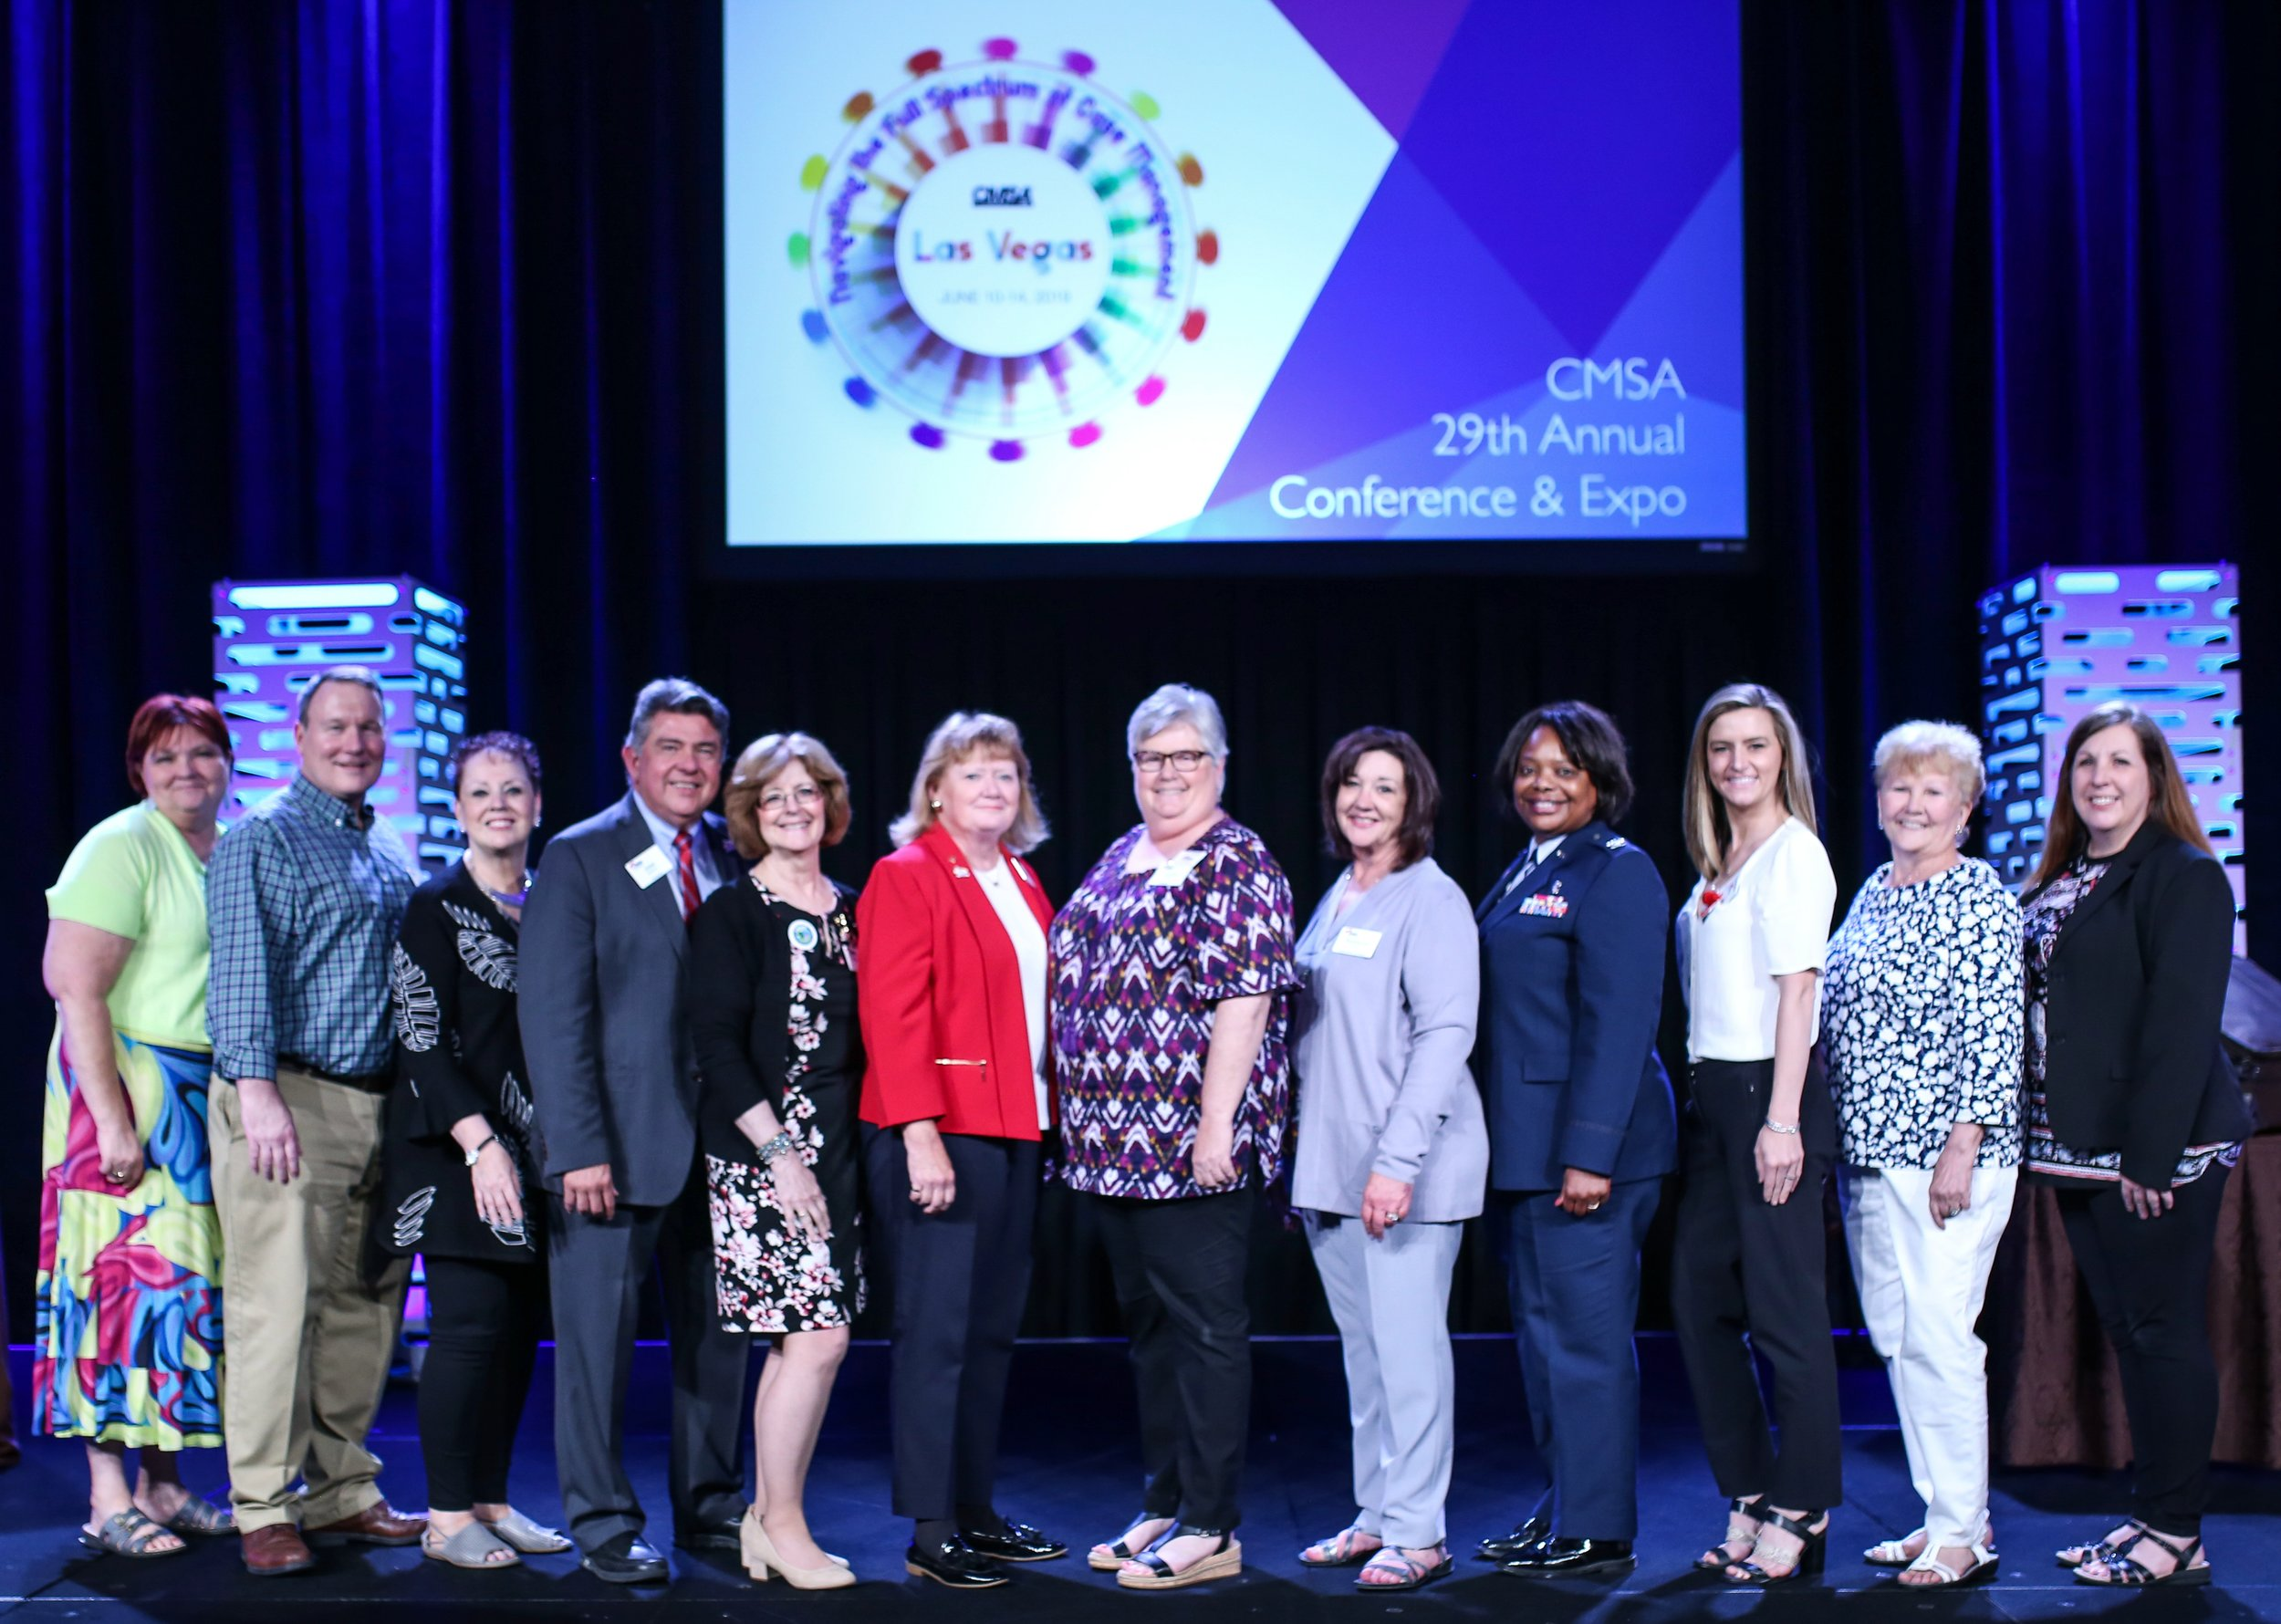 The CMSA Foundation was very excited to have a huge representation at the CMSA Annual Conference in Las Vegas in June 2019. The current board and incoming board were all present!    Left to Right:  Susie Ratterree, Alan Boardman, Sheilah McGlone, Jose Santoro, Patricia Noonan, Deborah Gutteridge, Linda Hobkirk, Rebecca Perez, Melanie Prince, Andrea Norton, Peggy Leonard, and Michele Lee  (Not shown: Mary McLaughlin Davis, outgoing Vice President).